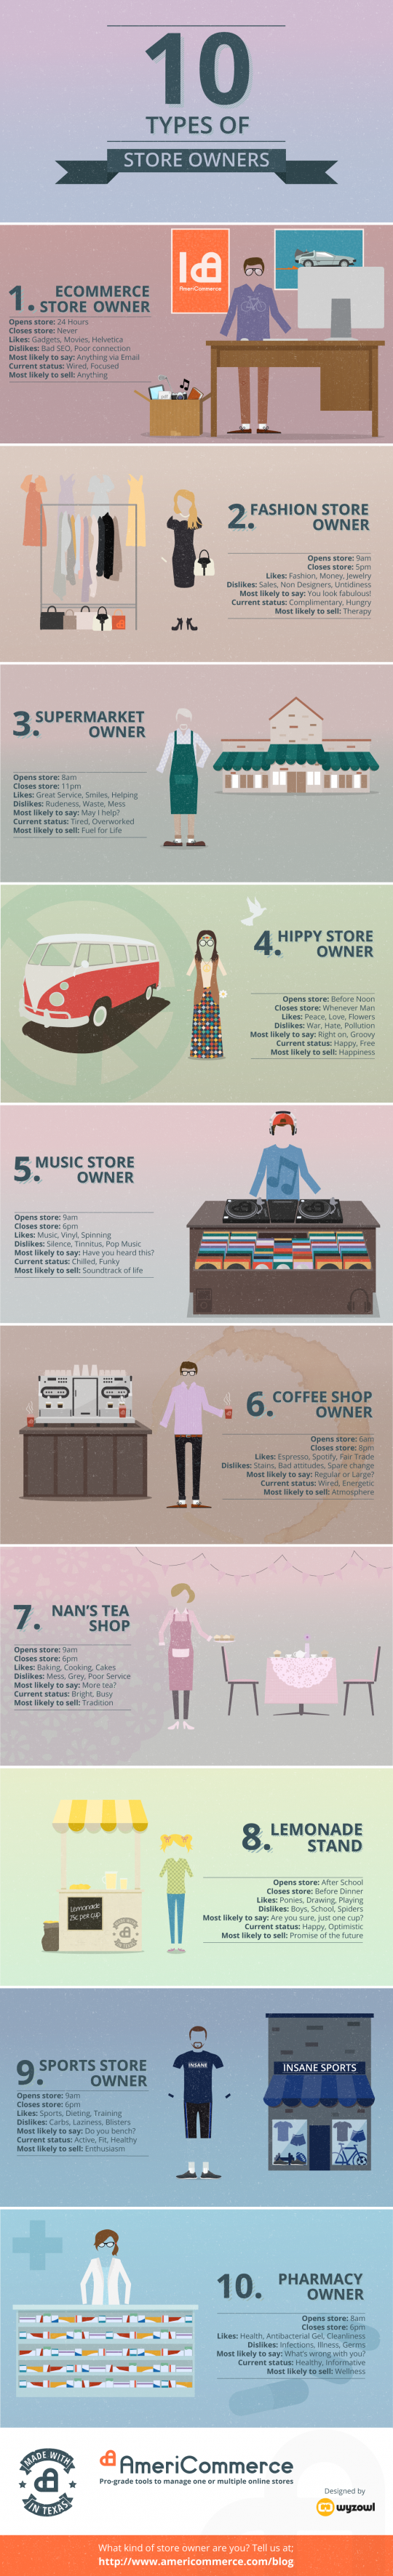 10 Types of Store Owners